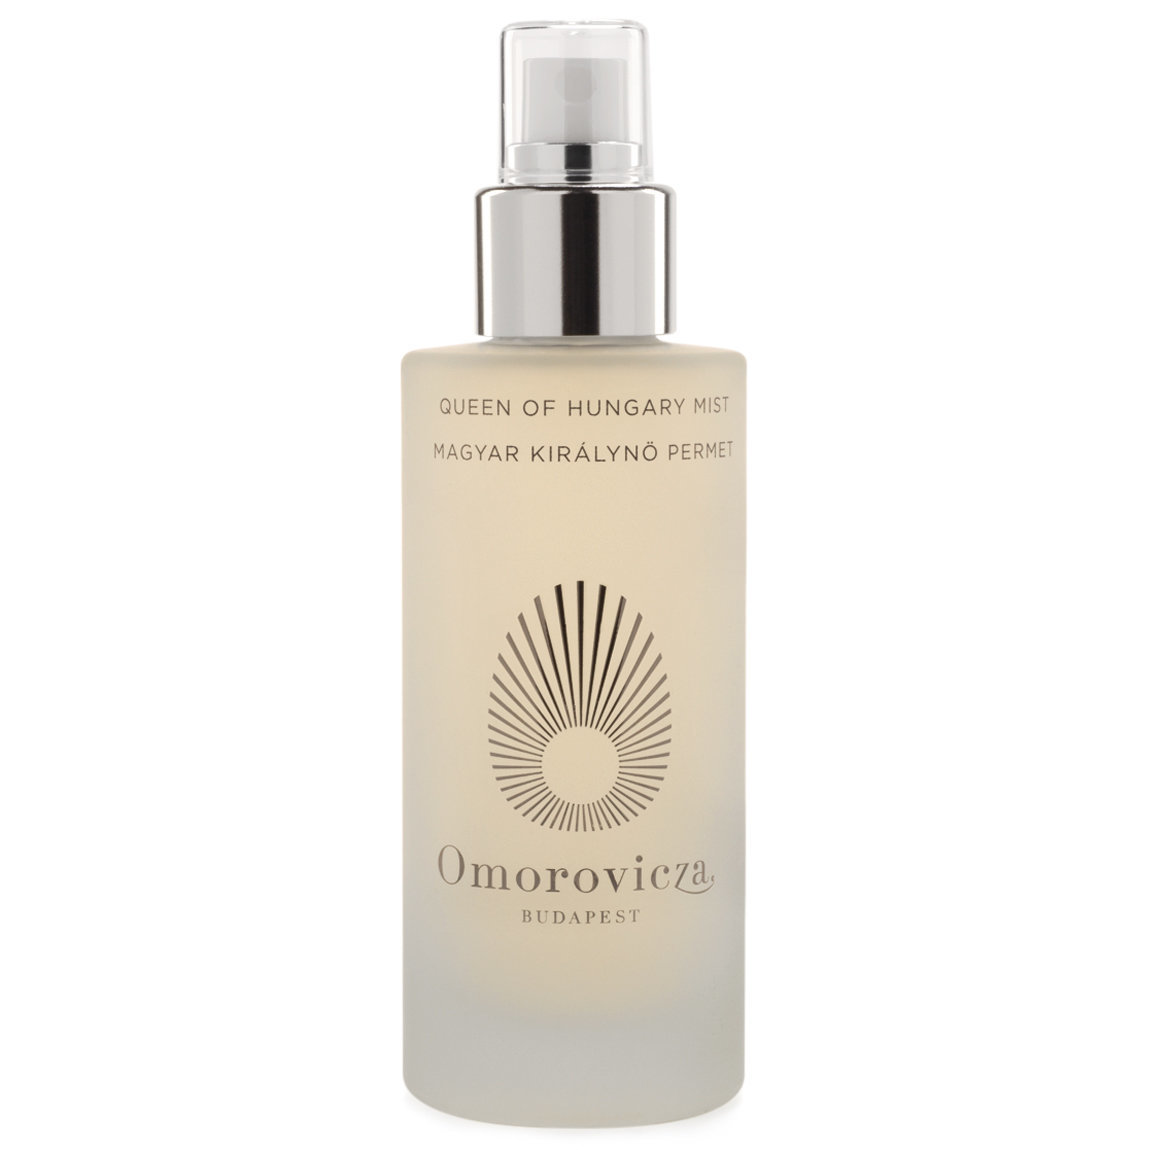 Omorovicza Queen of Hungary Mist 100 ml product smear.